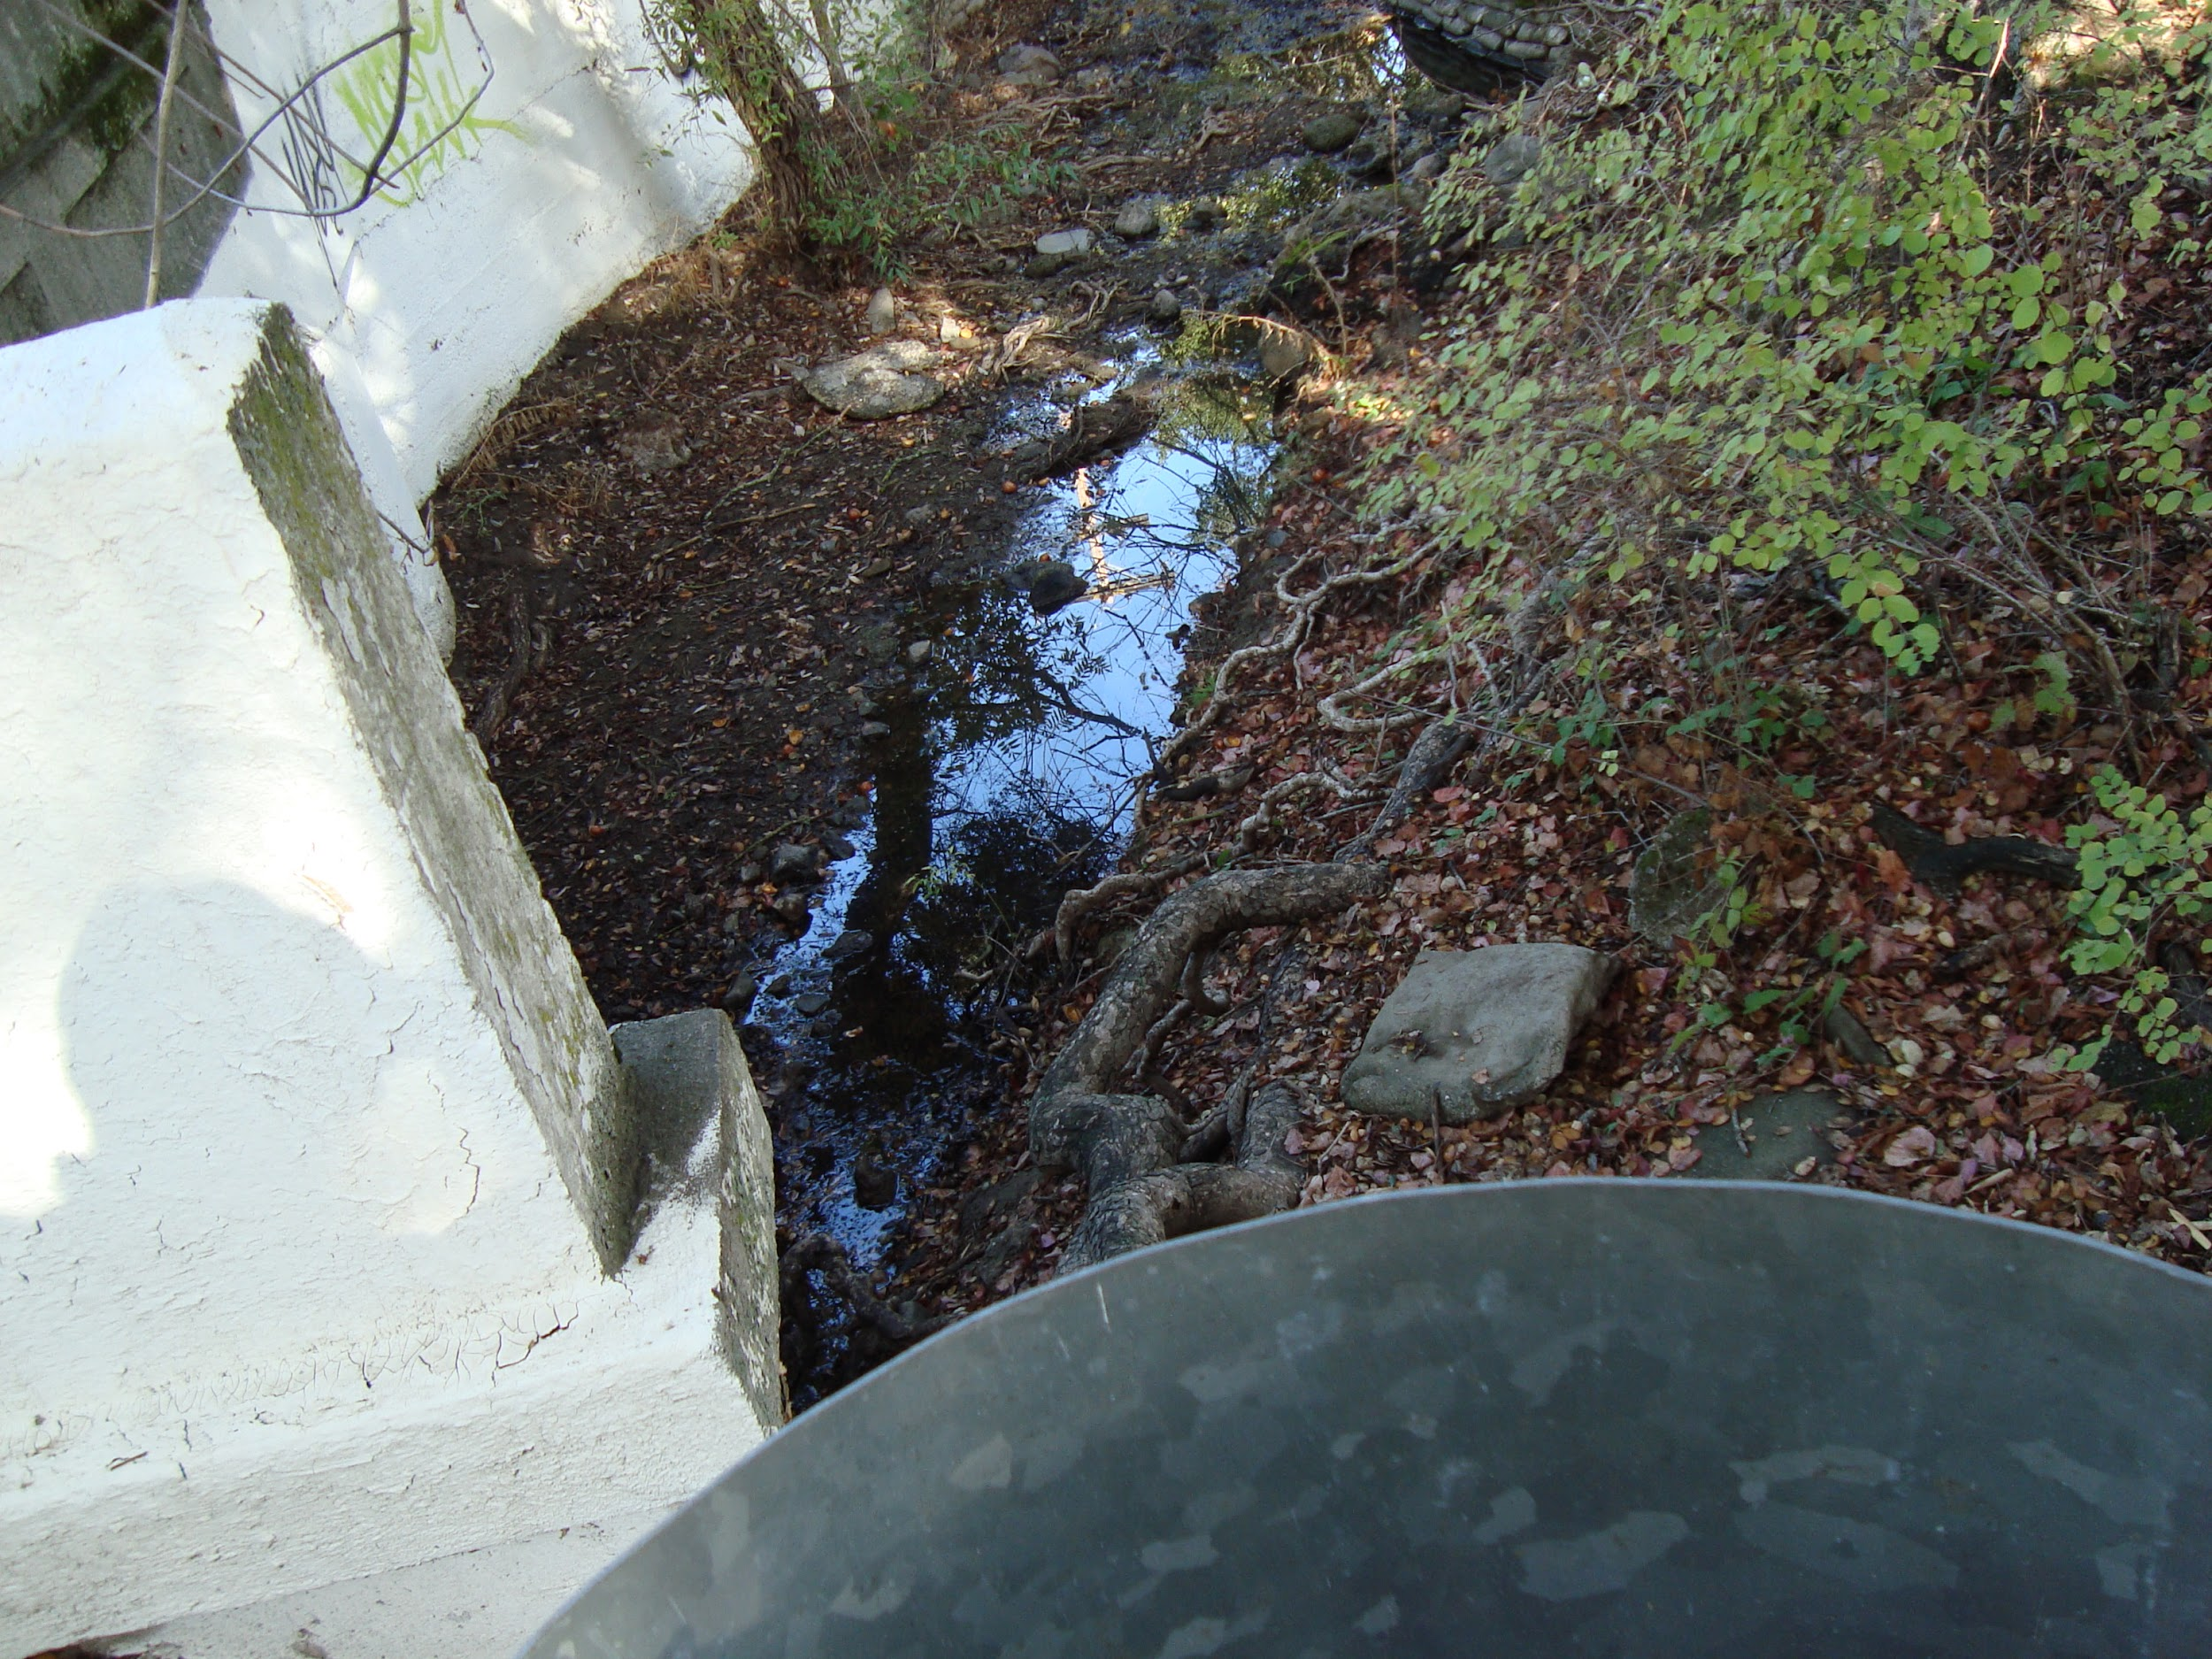 Water runs clear at Matadero Creek at Old Page Mill Road, November of 2014 where a small oil leak was discovered during the winter of 2013-2014. Photo Credit: Bob Foglesong.